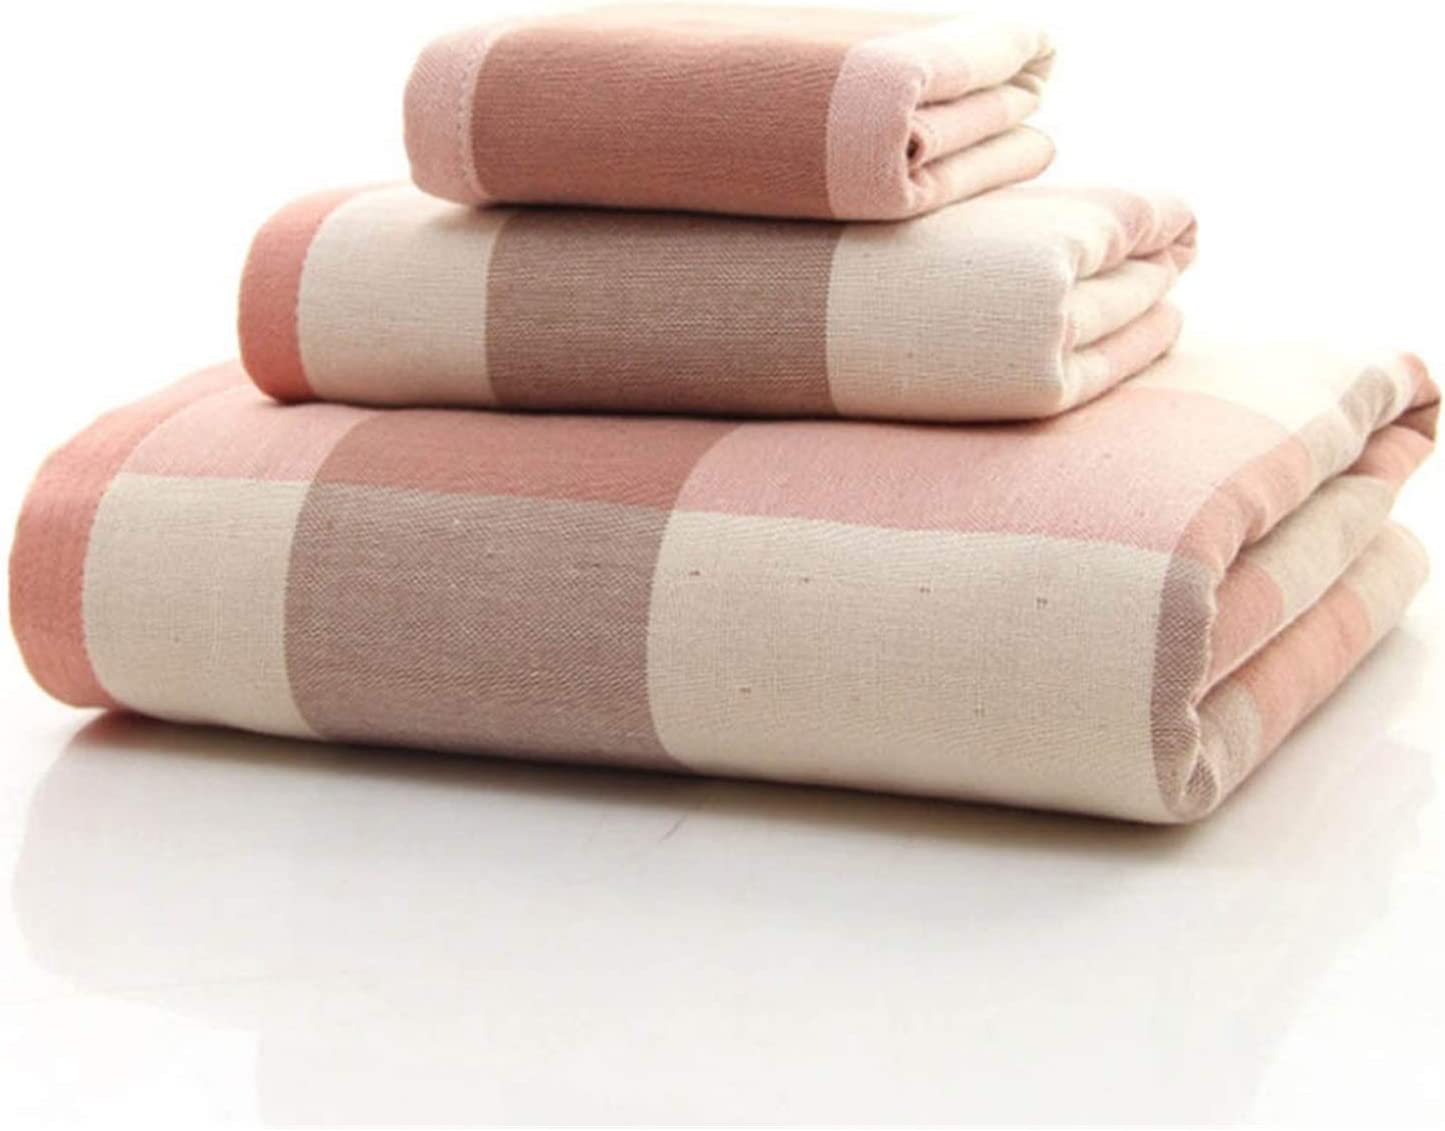 Jgzwlkj Bathroom Towels Cube Max 85% OFF 100% Easy-to-use Cotton Thick Geometric Soft St